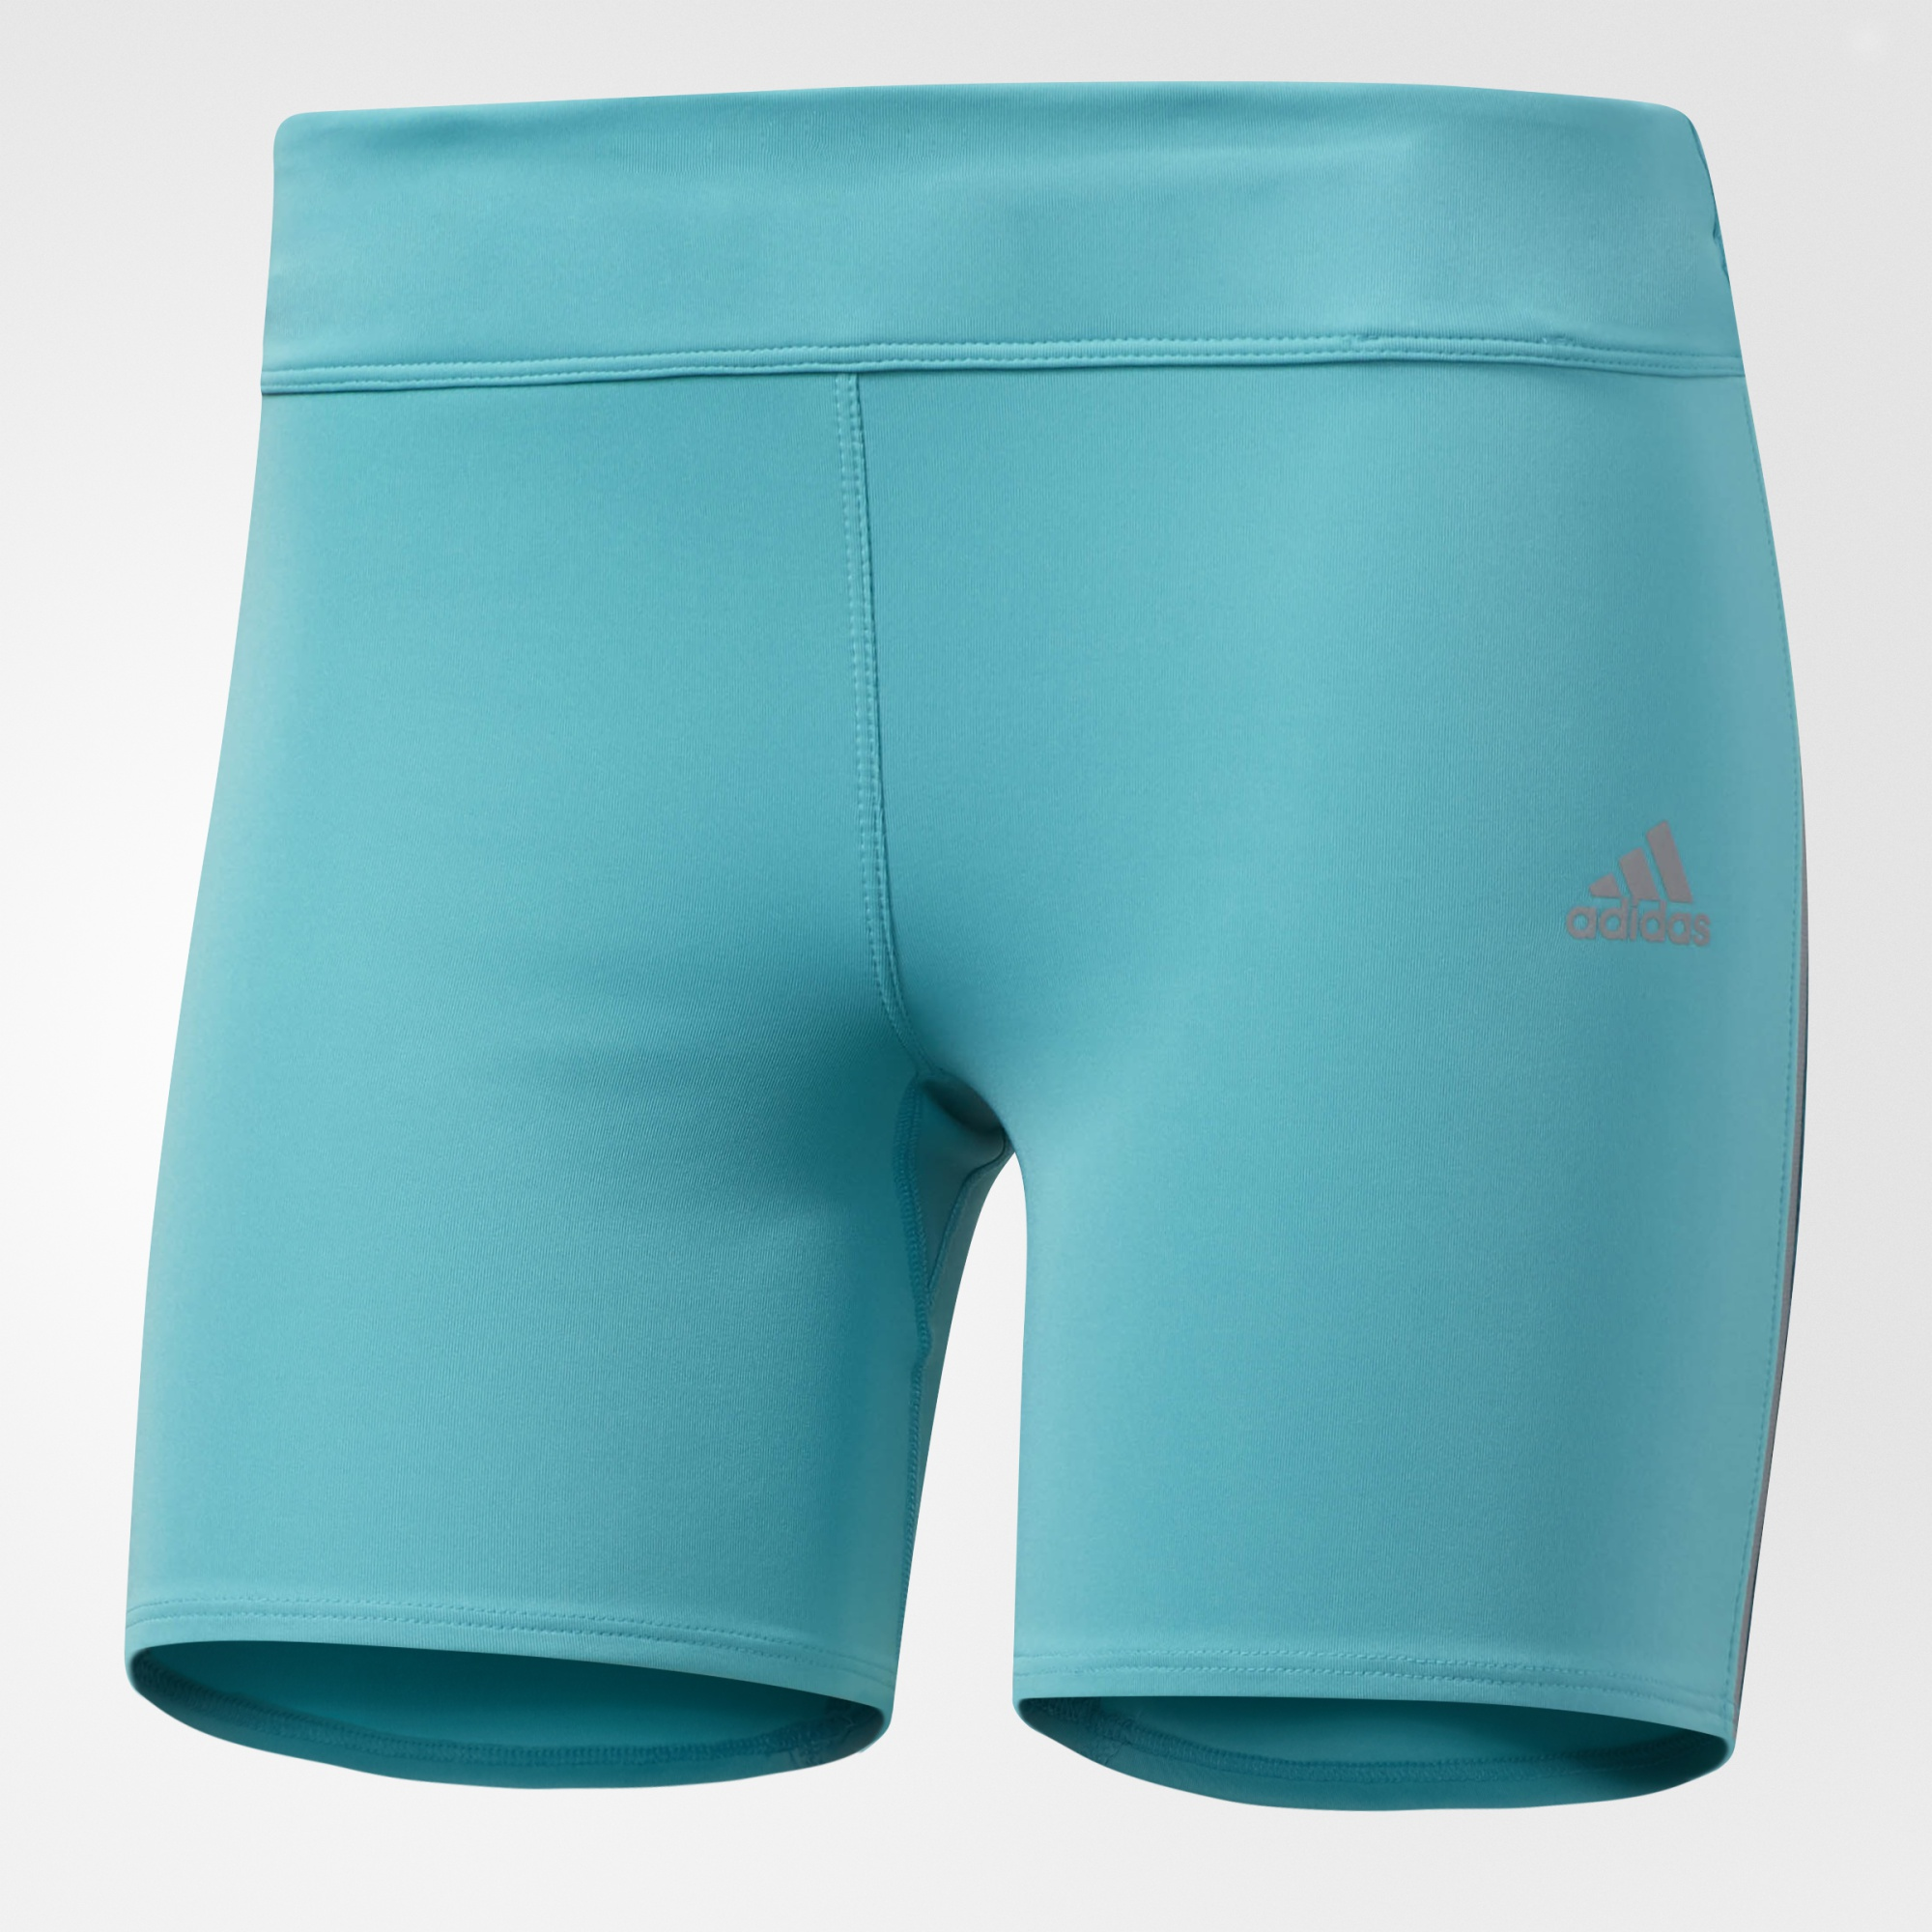 Shorts Adidas S98118 sports and entertainment for women копилка филин 14см уп 1 36шт